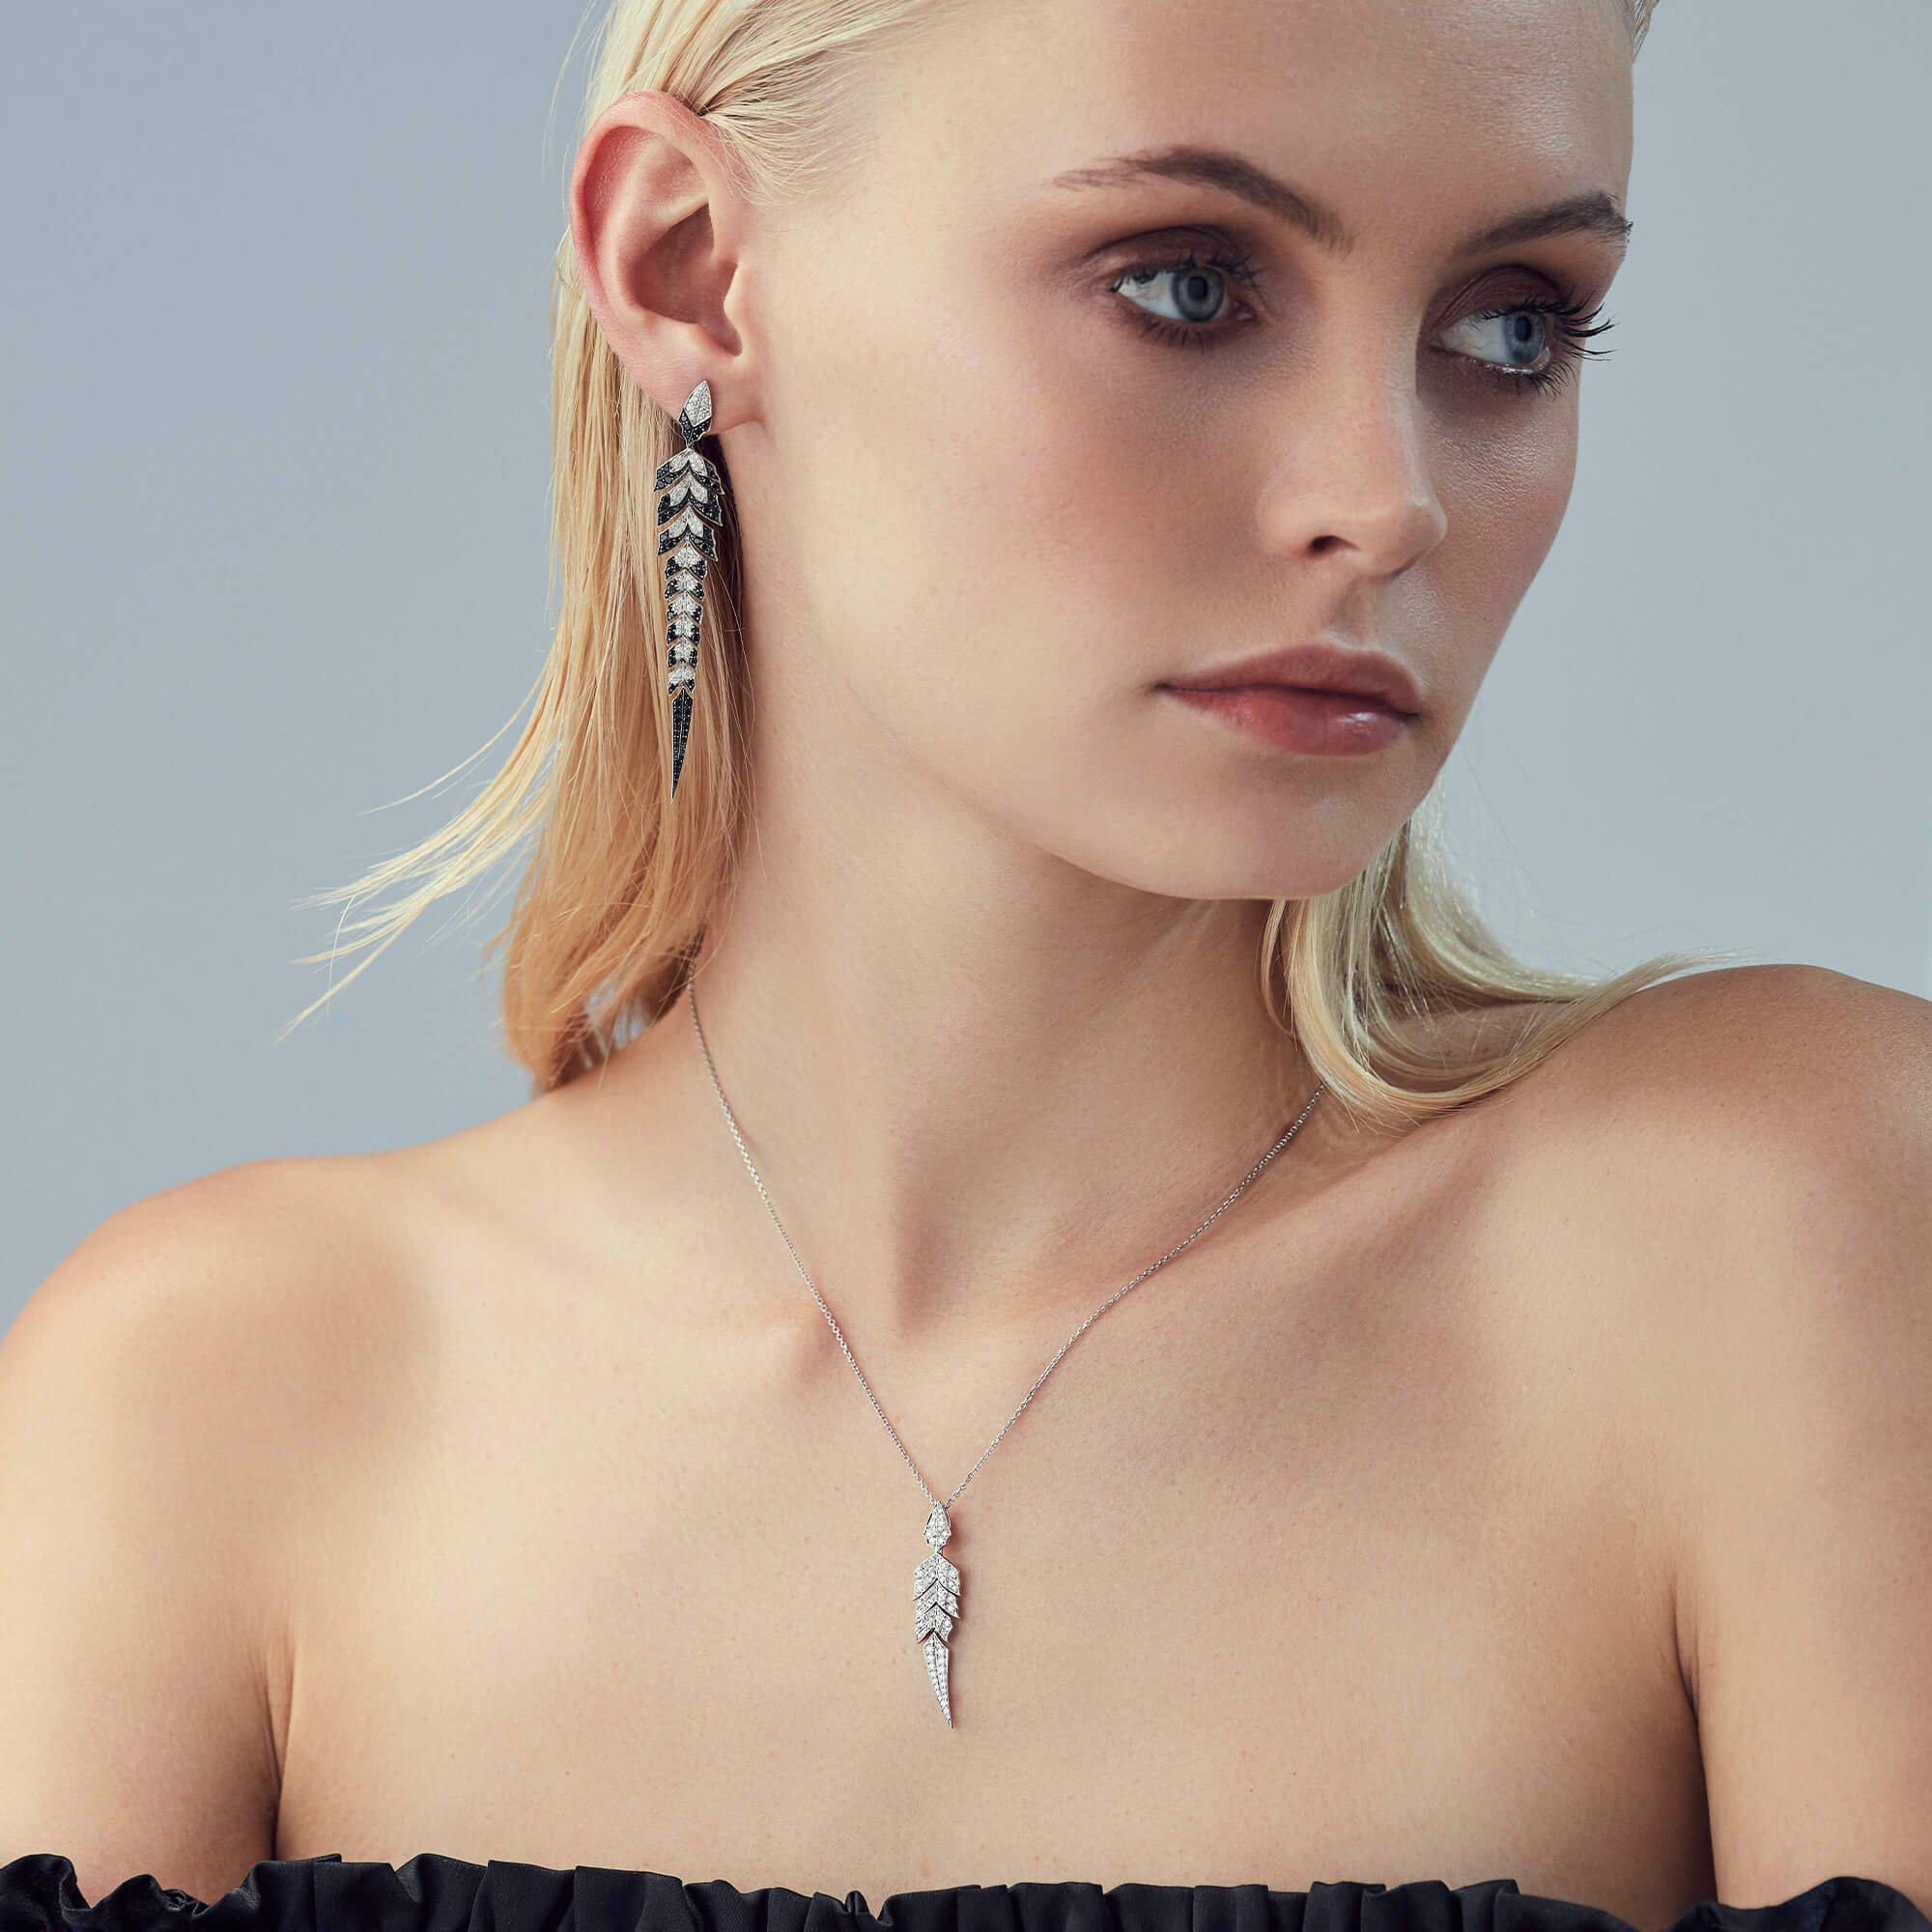 White Gold Pave Earrings With Black Diamonds Magnipheasant